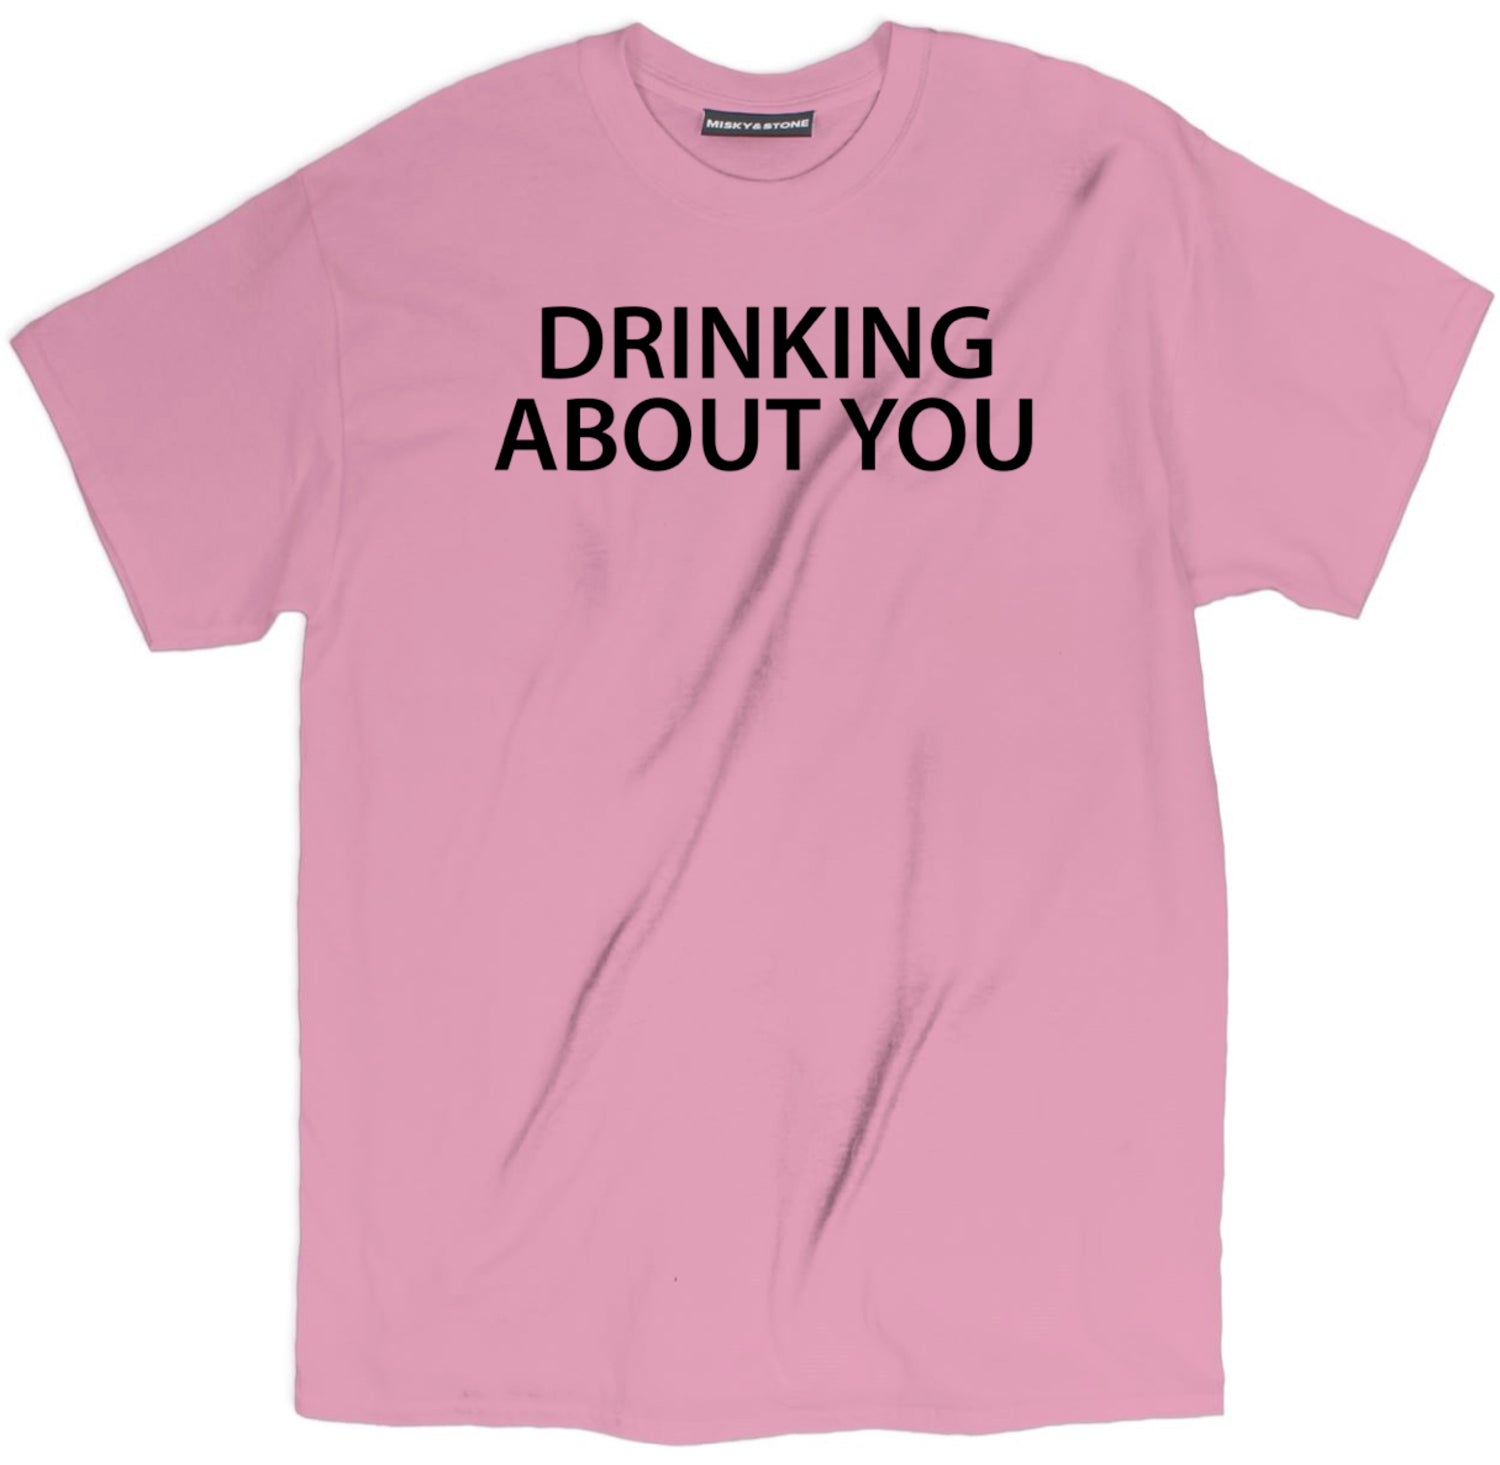 drinking about you shirt, drunk shirts, drunk t shirts, day drunk shirt, funny drunk shirts, drunk 1 drunk 2 shirts, funny beer shirts, funny beer t shirts, drinking shirts, alcohol shirts, alcohol t shirts, funny drinking shirts, beer shirts,